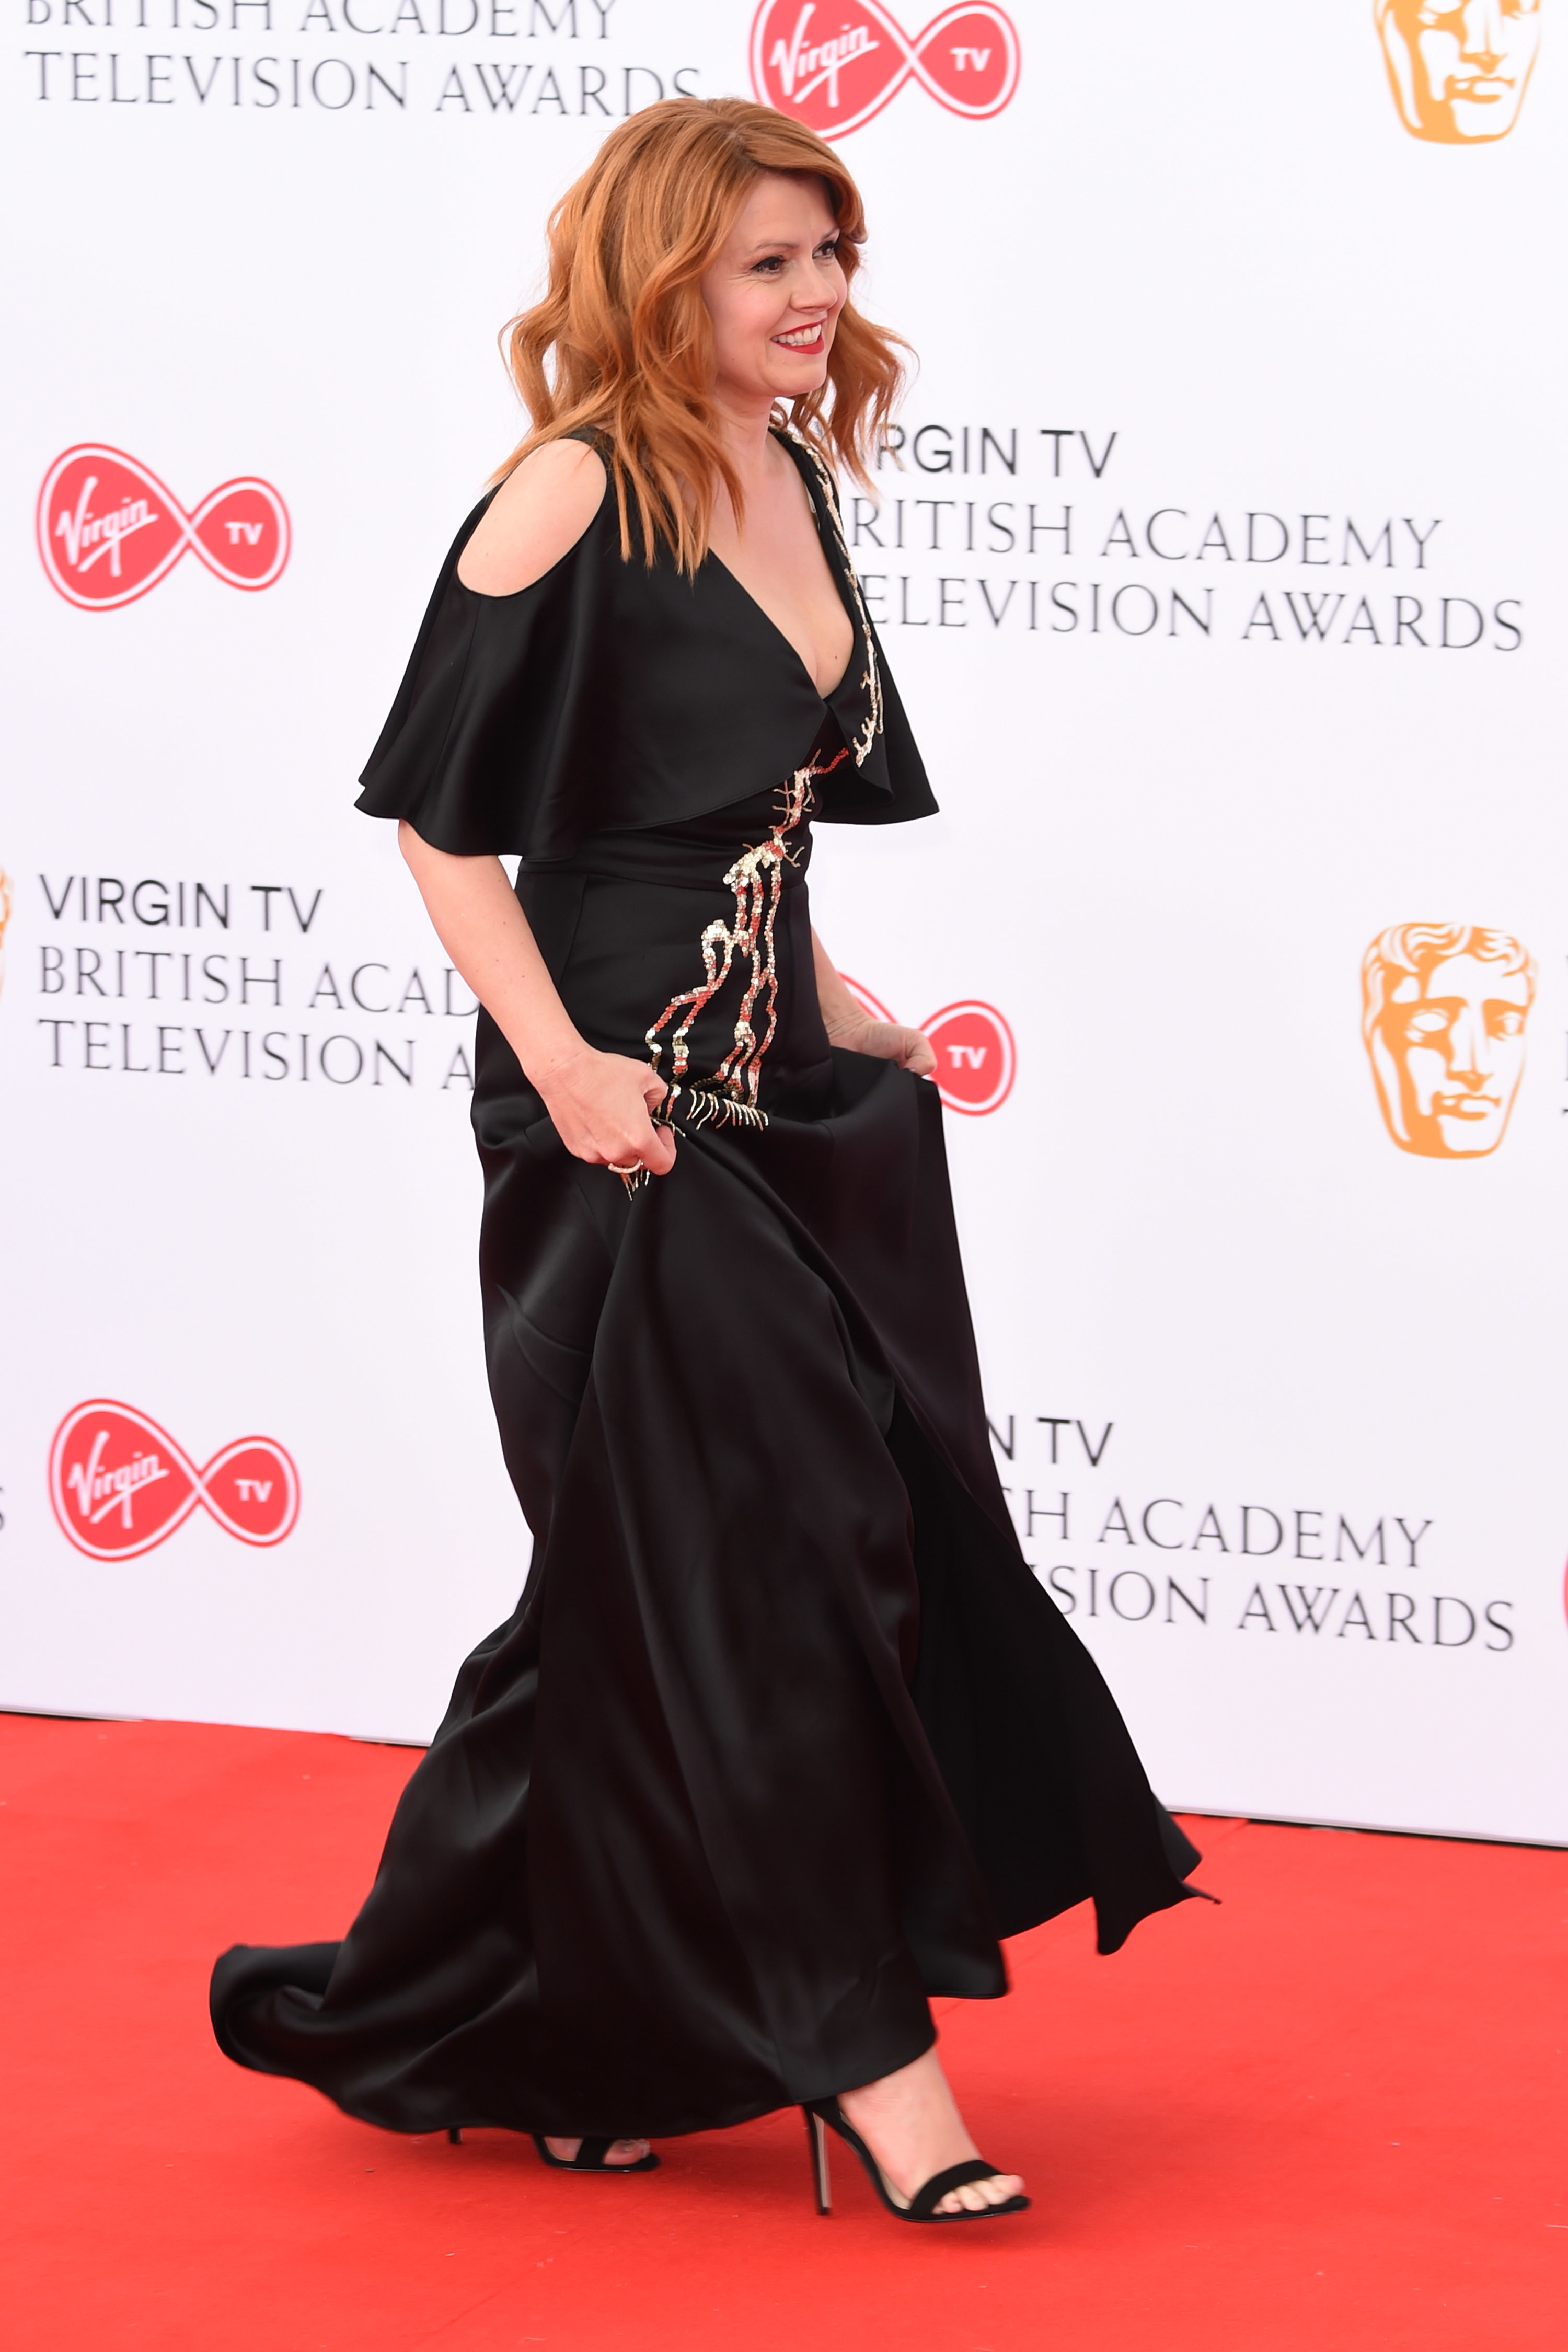 Sian Gibson Sian Gibson new picture